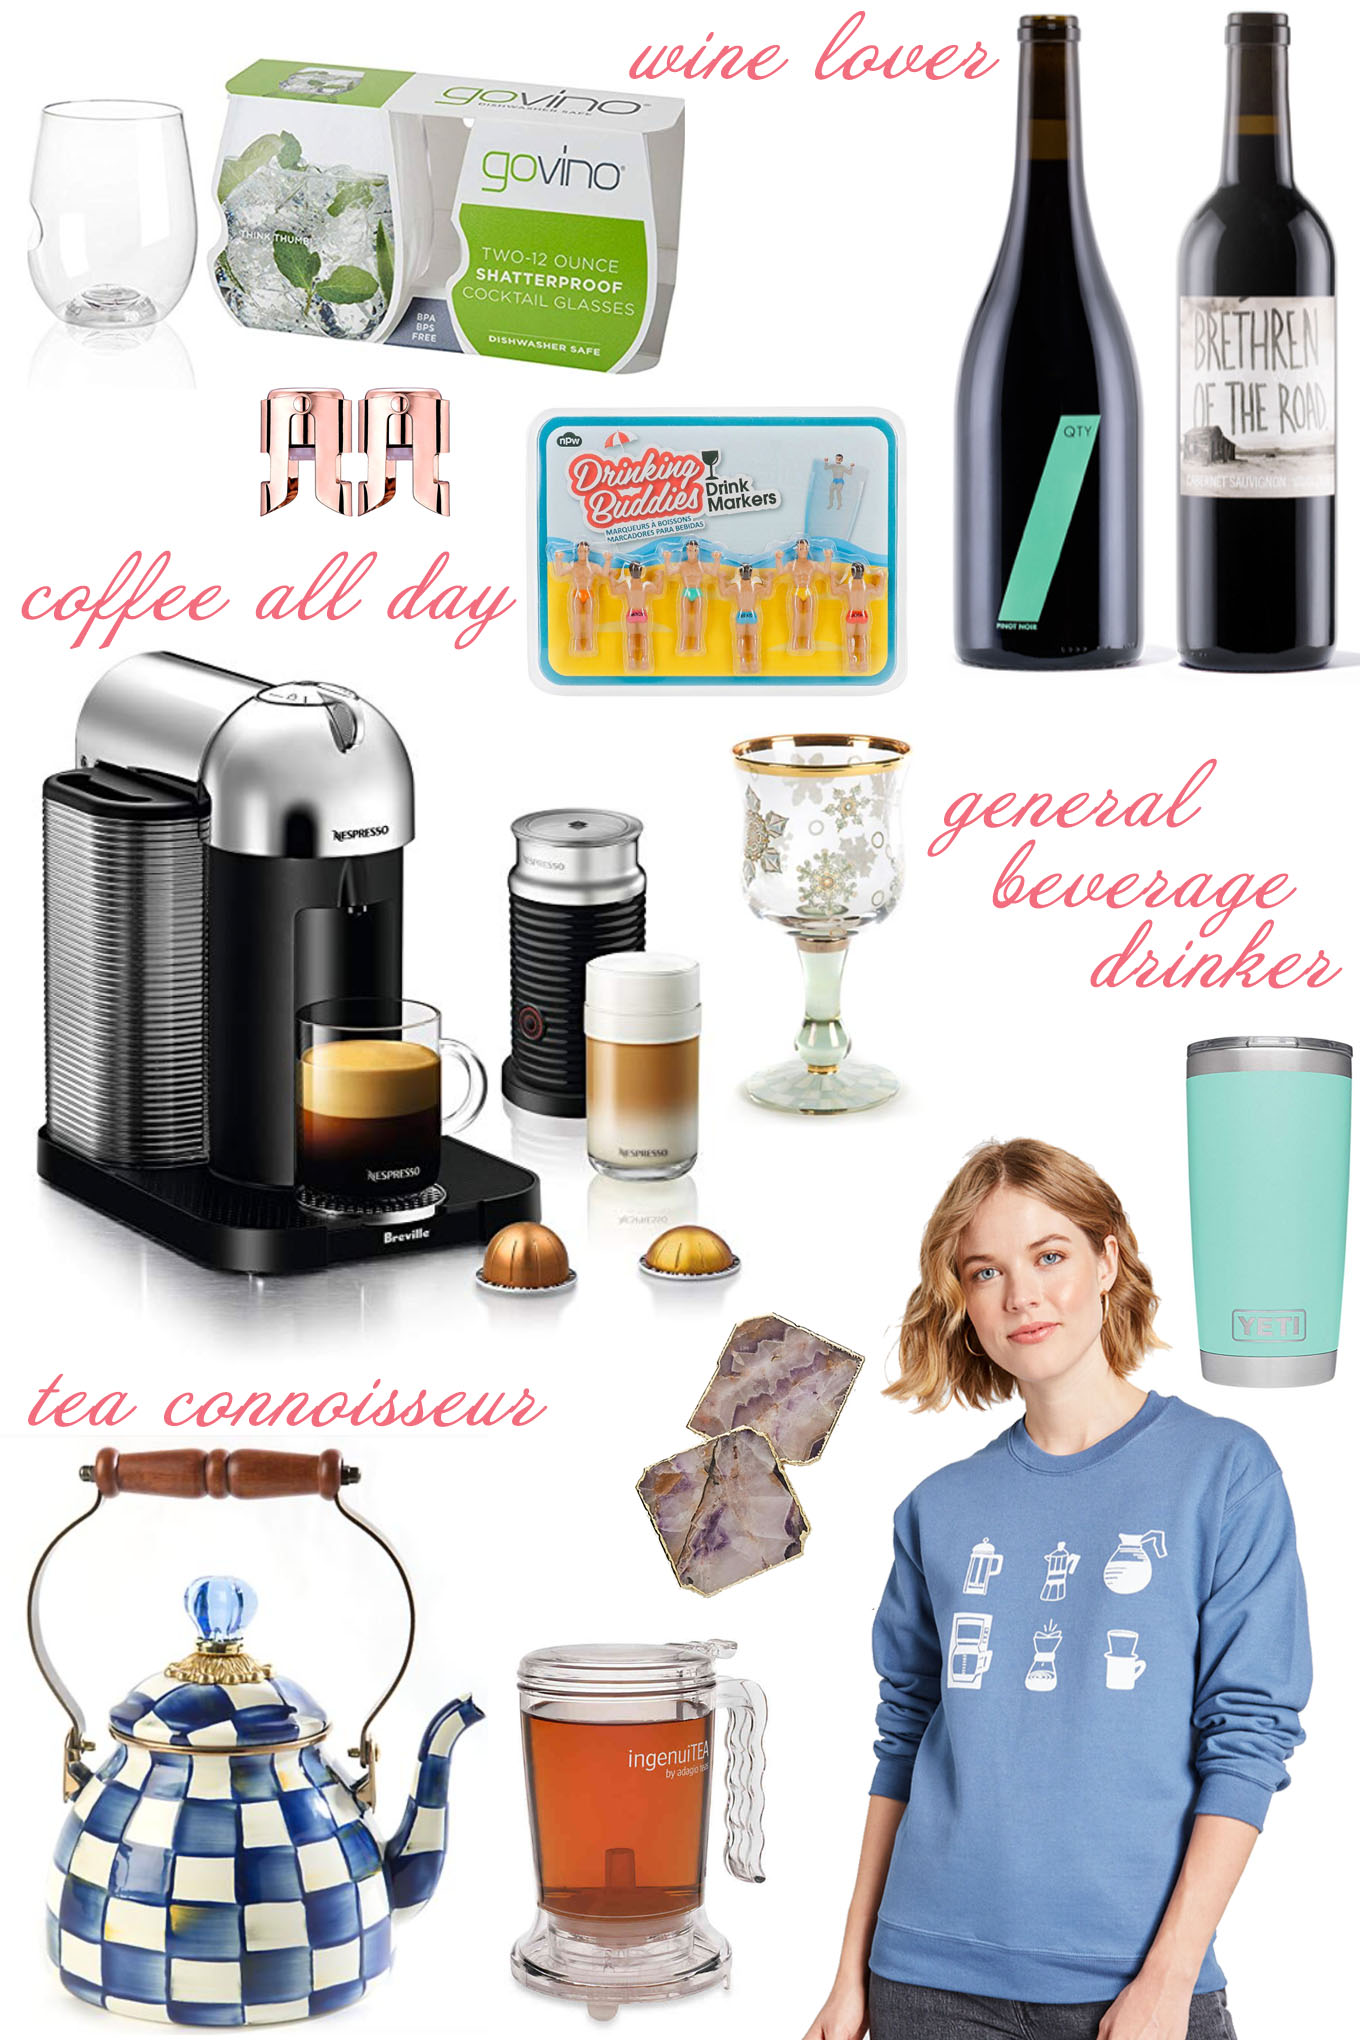 Gifts For Beverage Lovers by popular Chicago life and style blog, Glass of Glam: collage image of Amazon Govino Go Anywhere Dishwasher Safe Flexible Shatterproof Recyclable Wine Glasses, Amazon OWO Champagne Stopper, Target Beverage Marker, Winc wine, MacKenzie Childs Snowfall Wine Glass, Amazon Breville Vertuo Coffee and Espresso Machine, Anthropologie Agate Coaster, MacKenzie Childs Royal Check Tea Kettle, Bed Bath and Beyond adagio teas Ingenuitea 16-Ounce Teapot, Amazon YETI Rambler 20 oz Stainless Steel Vacuum Insulated Tumbler w/MagSlider Lid, and Mod Cloth Perfect Brew Graphic Sweatshirt.